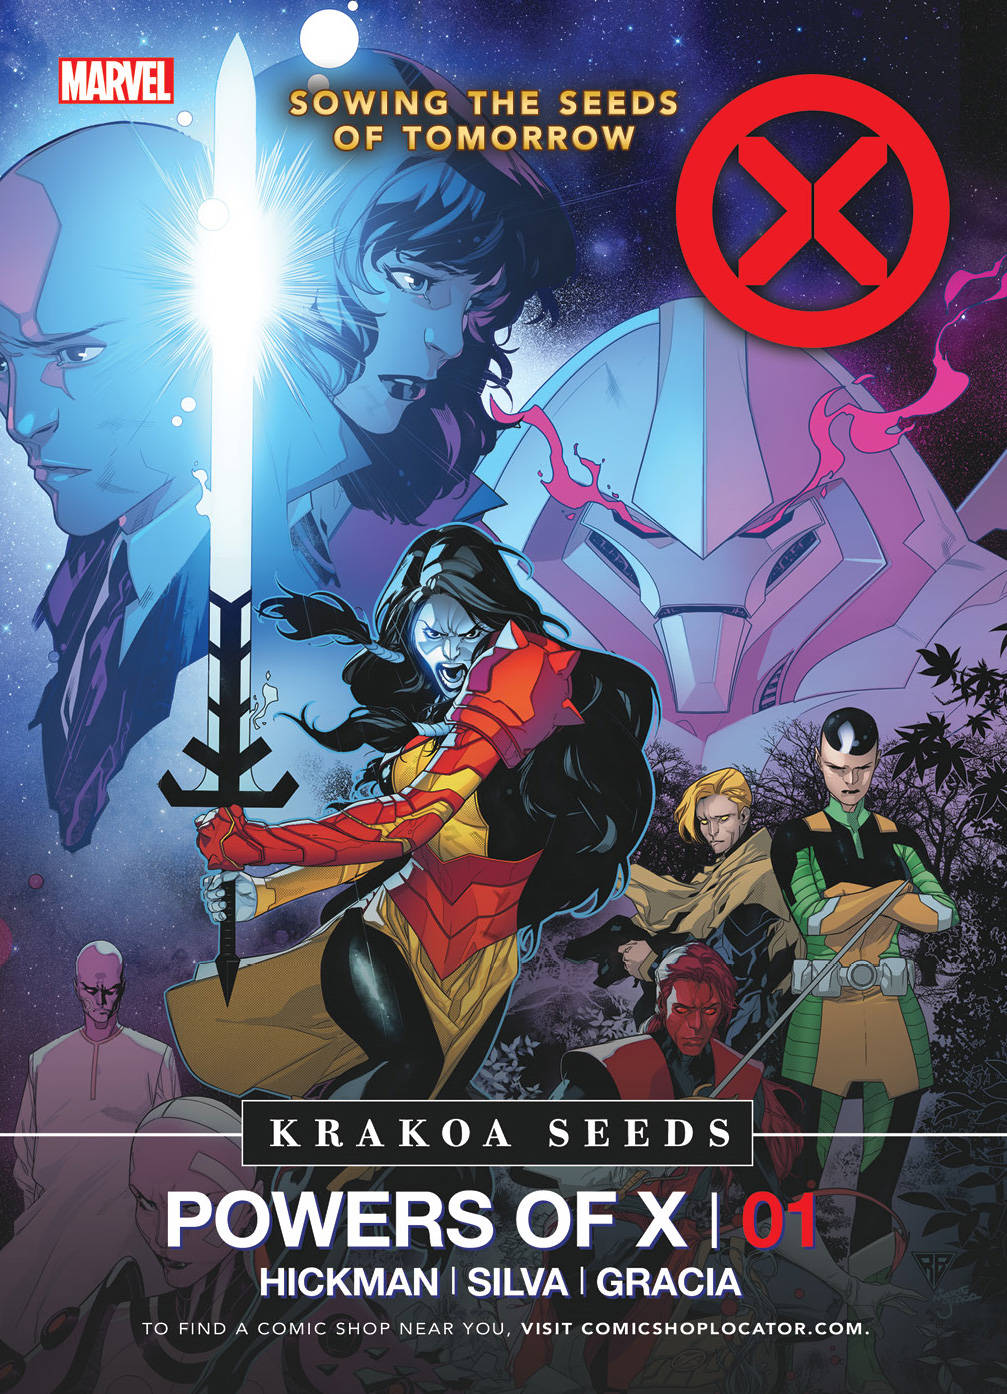 HOUSE OF X POWERS OF X SEED PACKETS FREE WITH EVERY ORDER (MUST BE ADDED TO CART) 07/31/19  FOC 07/01/19